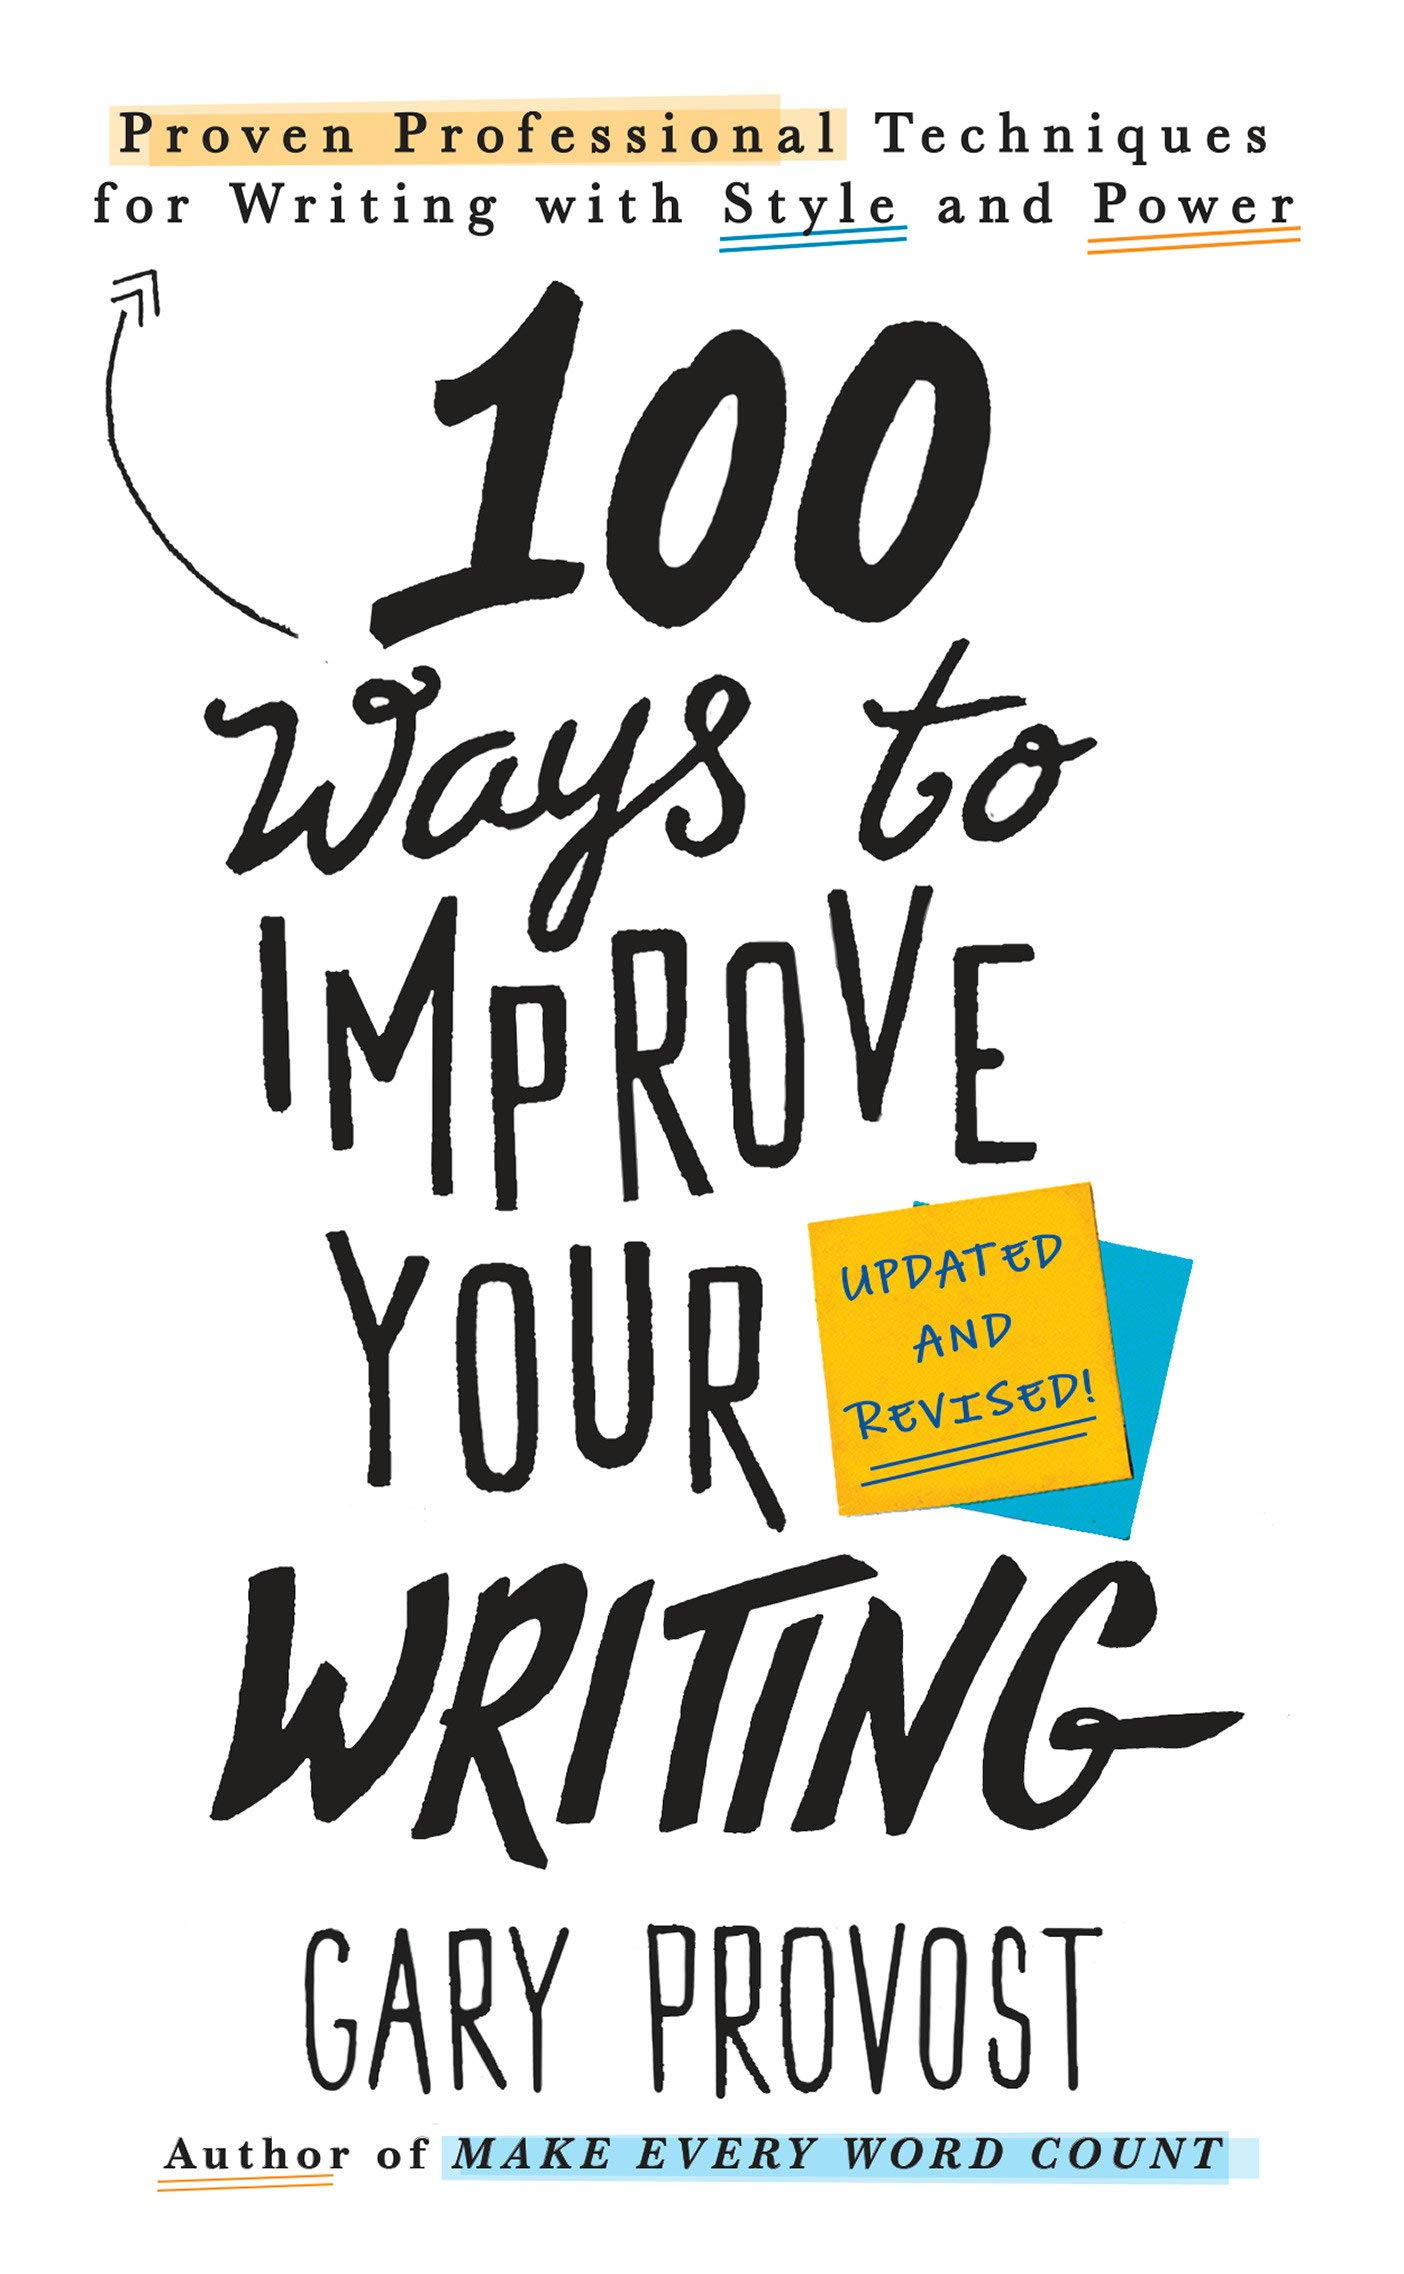 5 Ways to Improve Your Writing (Updated): Proven Professional